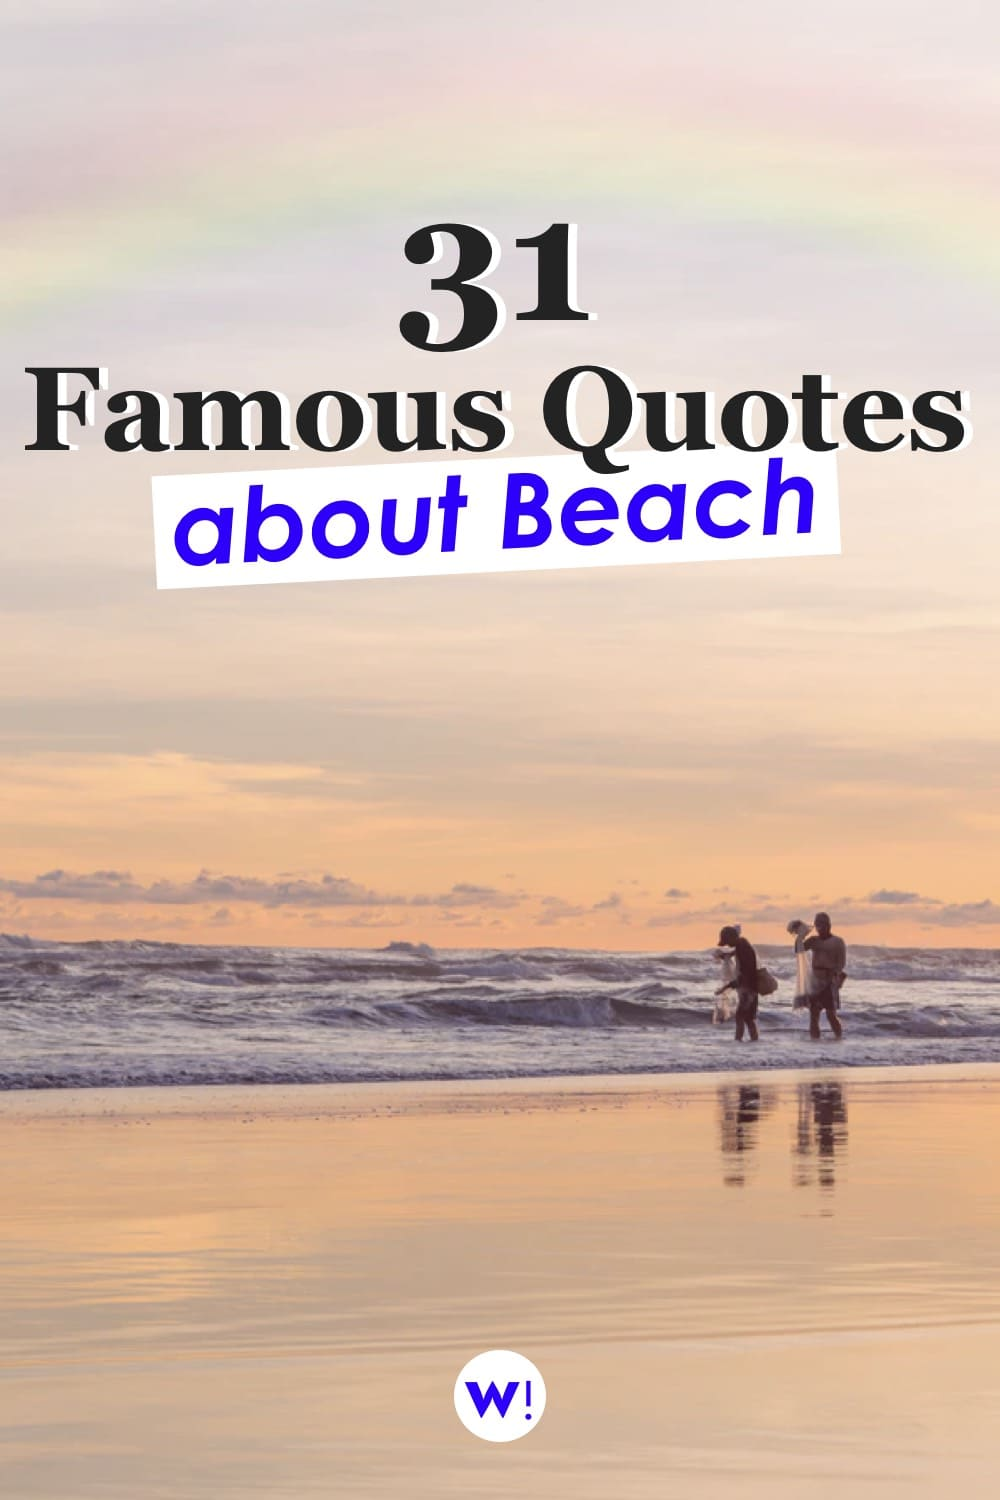 Looking specifically for famous quotes about the beach? Don't go anywhere; this is exactly what you'll find in this article! The first part is dedicated to the most famous one, and the second part to beach quotes from famous people. beach quotes instagram caption |beach sayings and quotes |beach quotes inspirational ocean |ocean quotes beach |ocean quotes instagram caption | beach quotes instagram caption |sea quotes beach